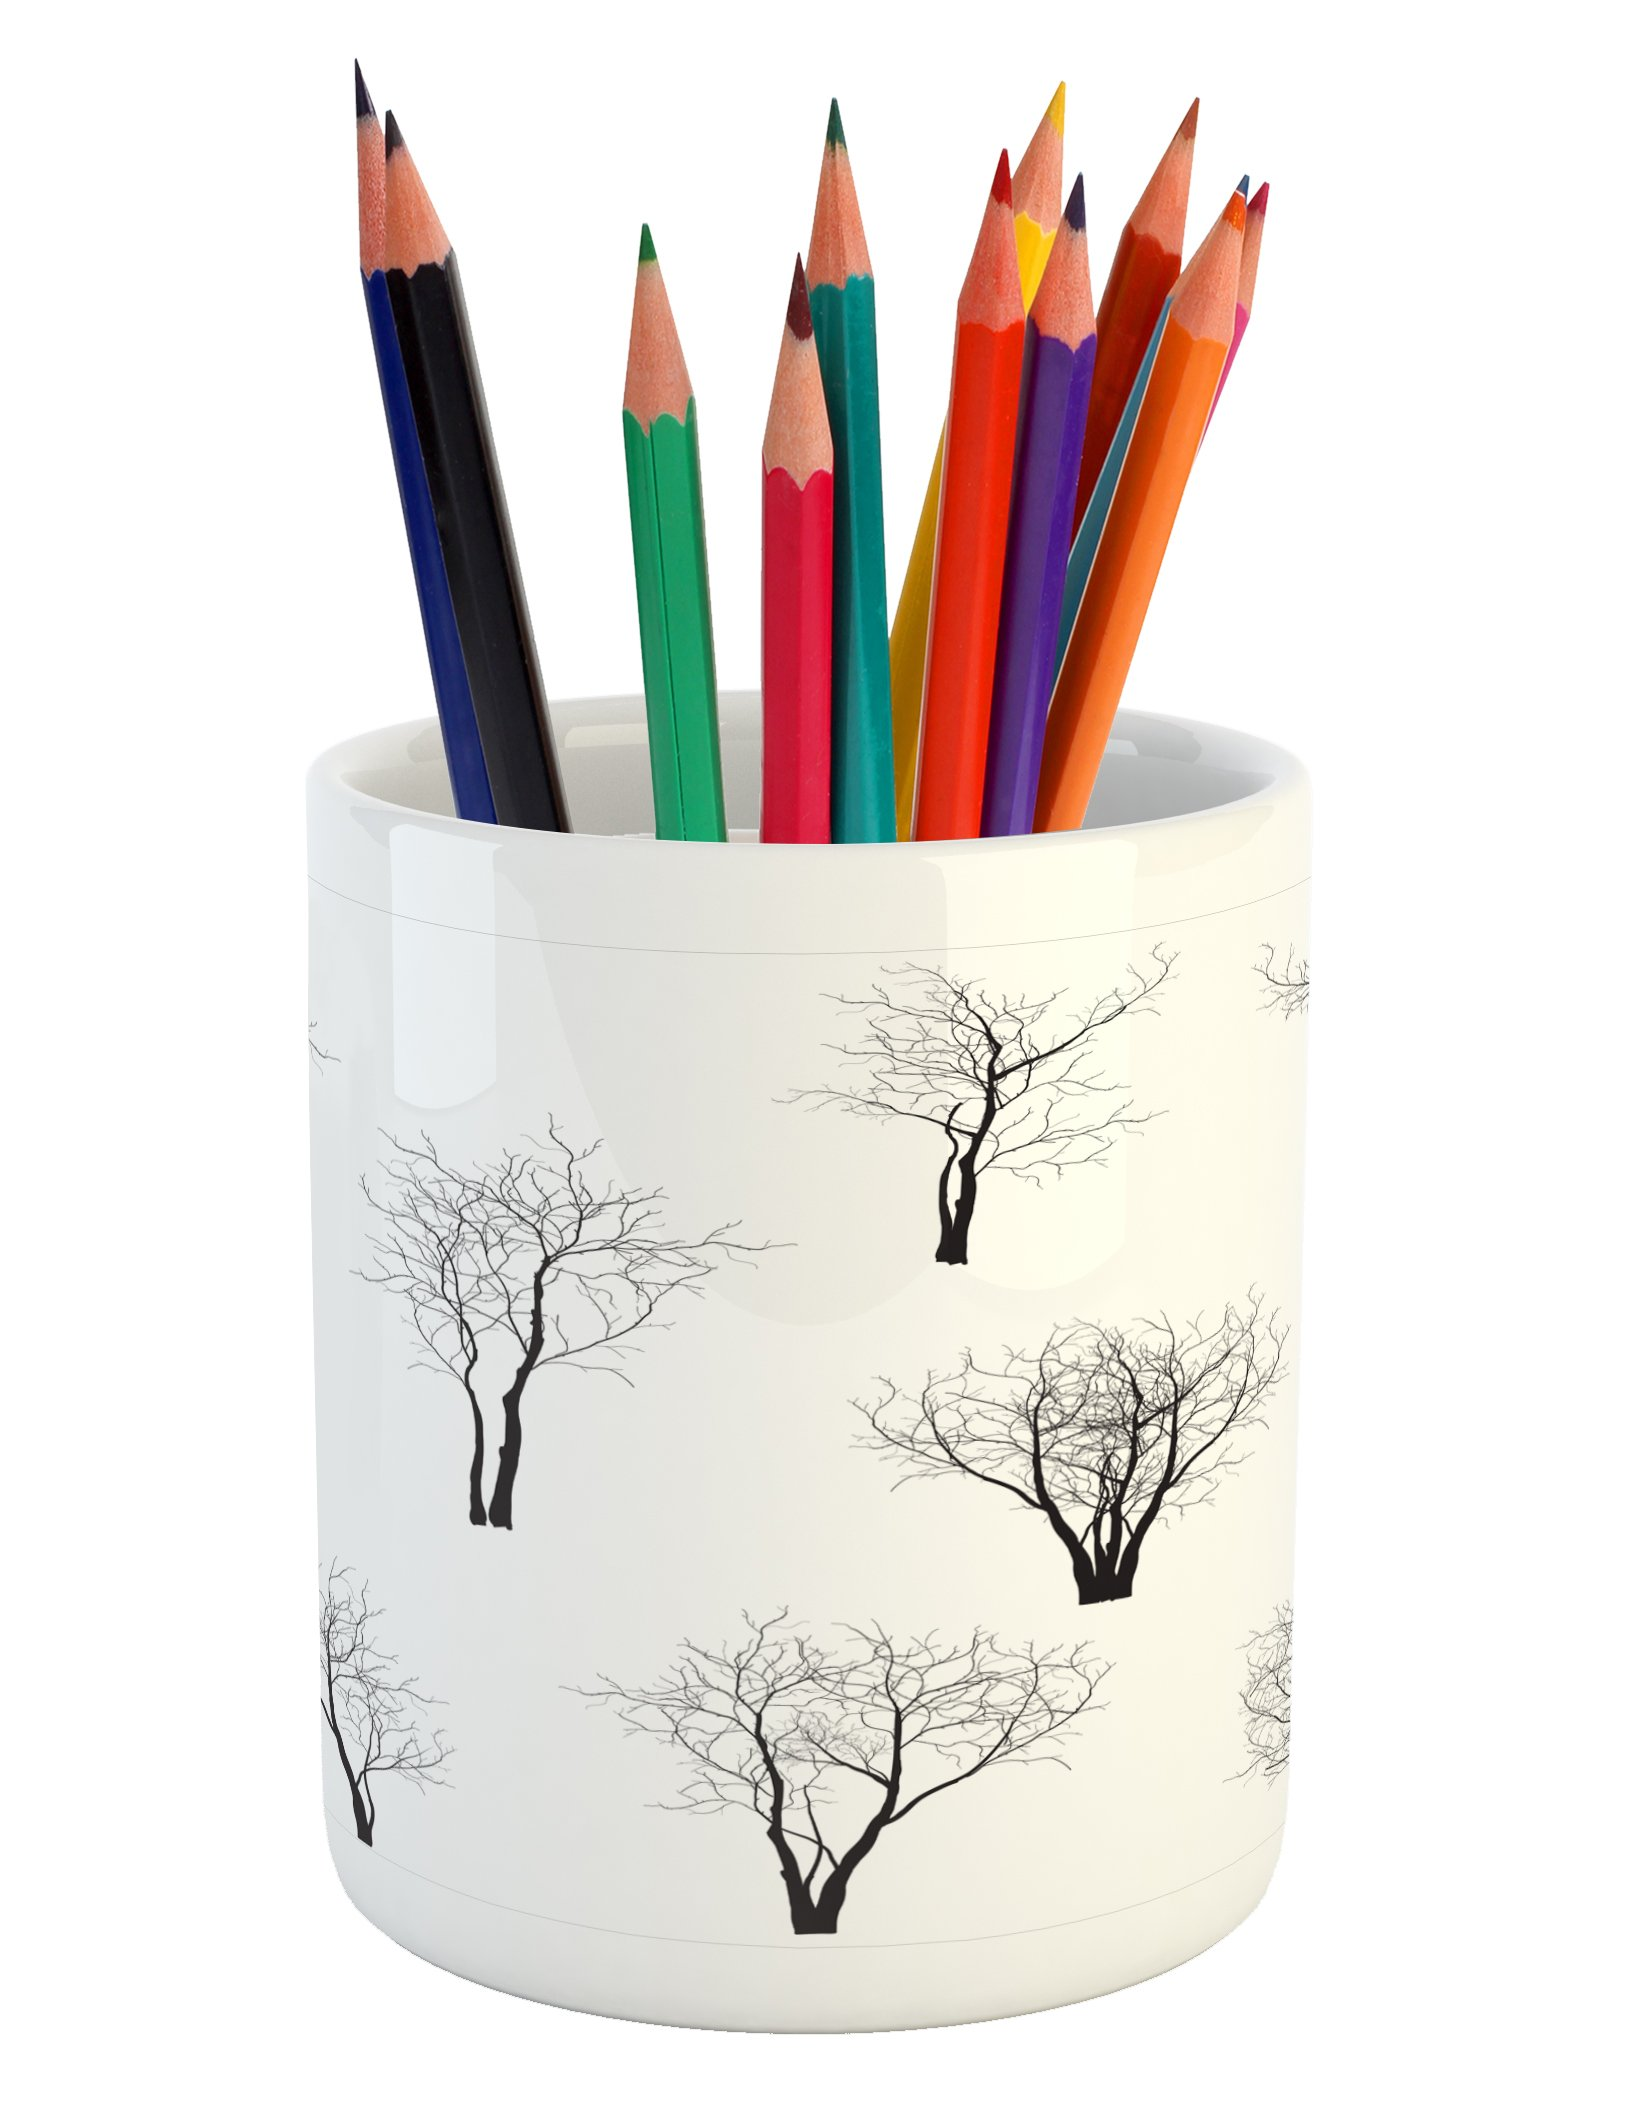 Ambesonne Forest Pencil Pen Holder, Spooky Horror Movie Themed Branches in the Forest Trees Nature Artwork Print, Printed Ceramic Pencil Pen Holder for Desk Office Accessory, Black and White by Ambesonne